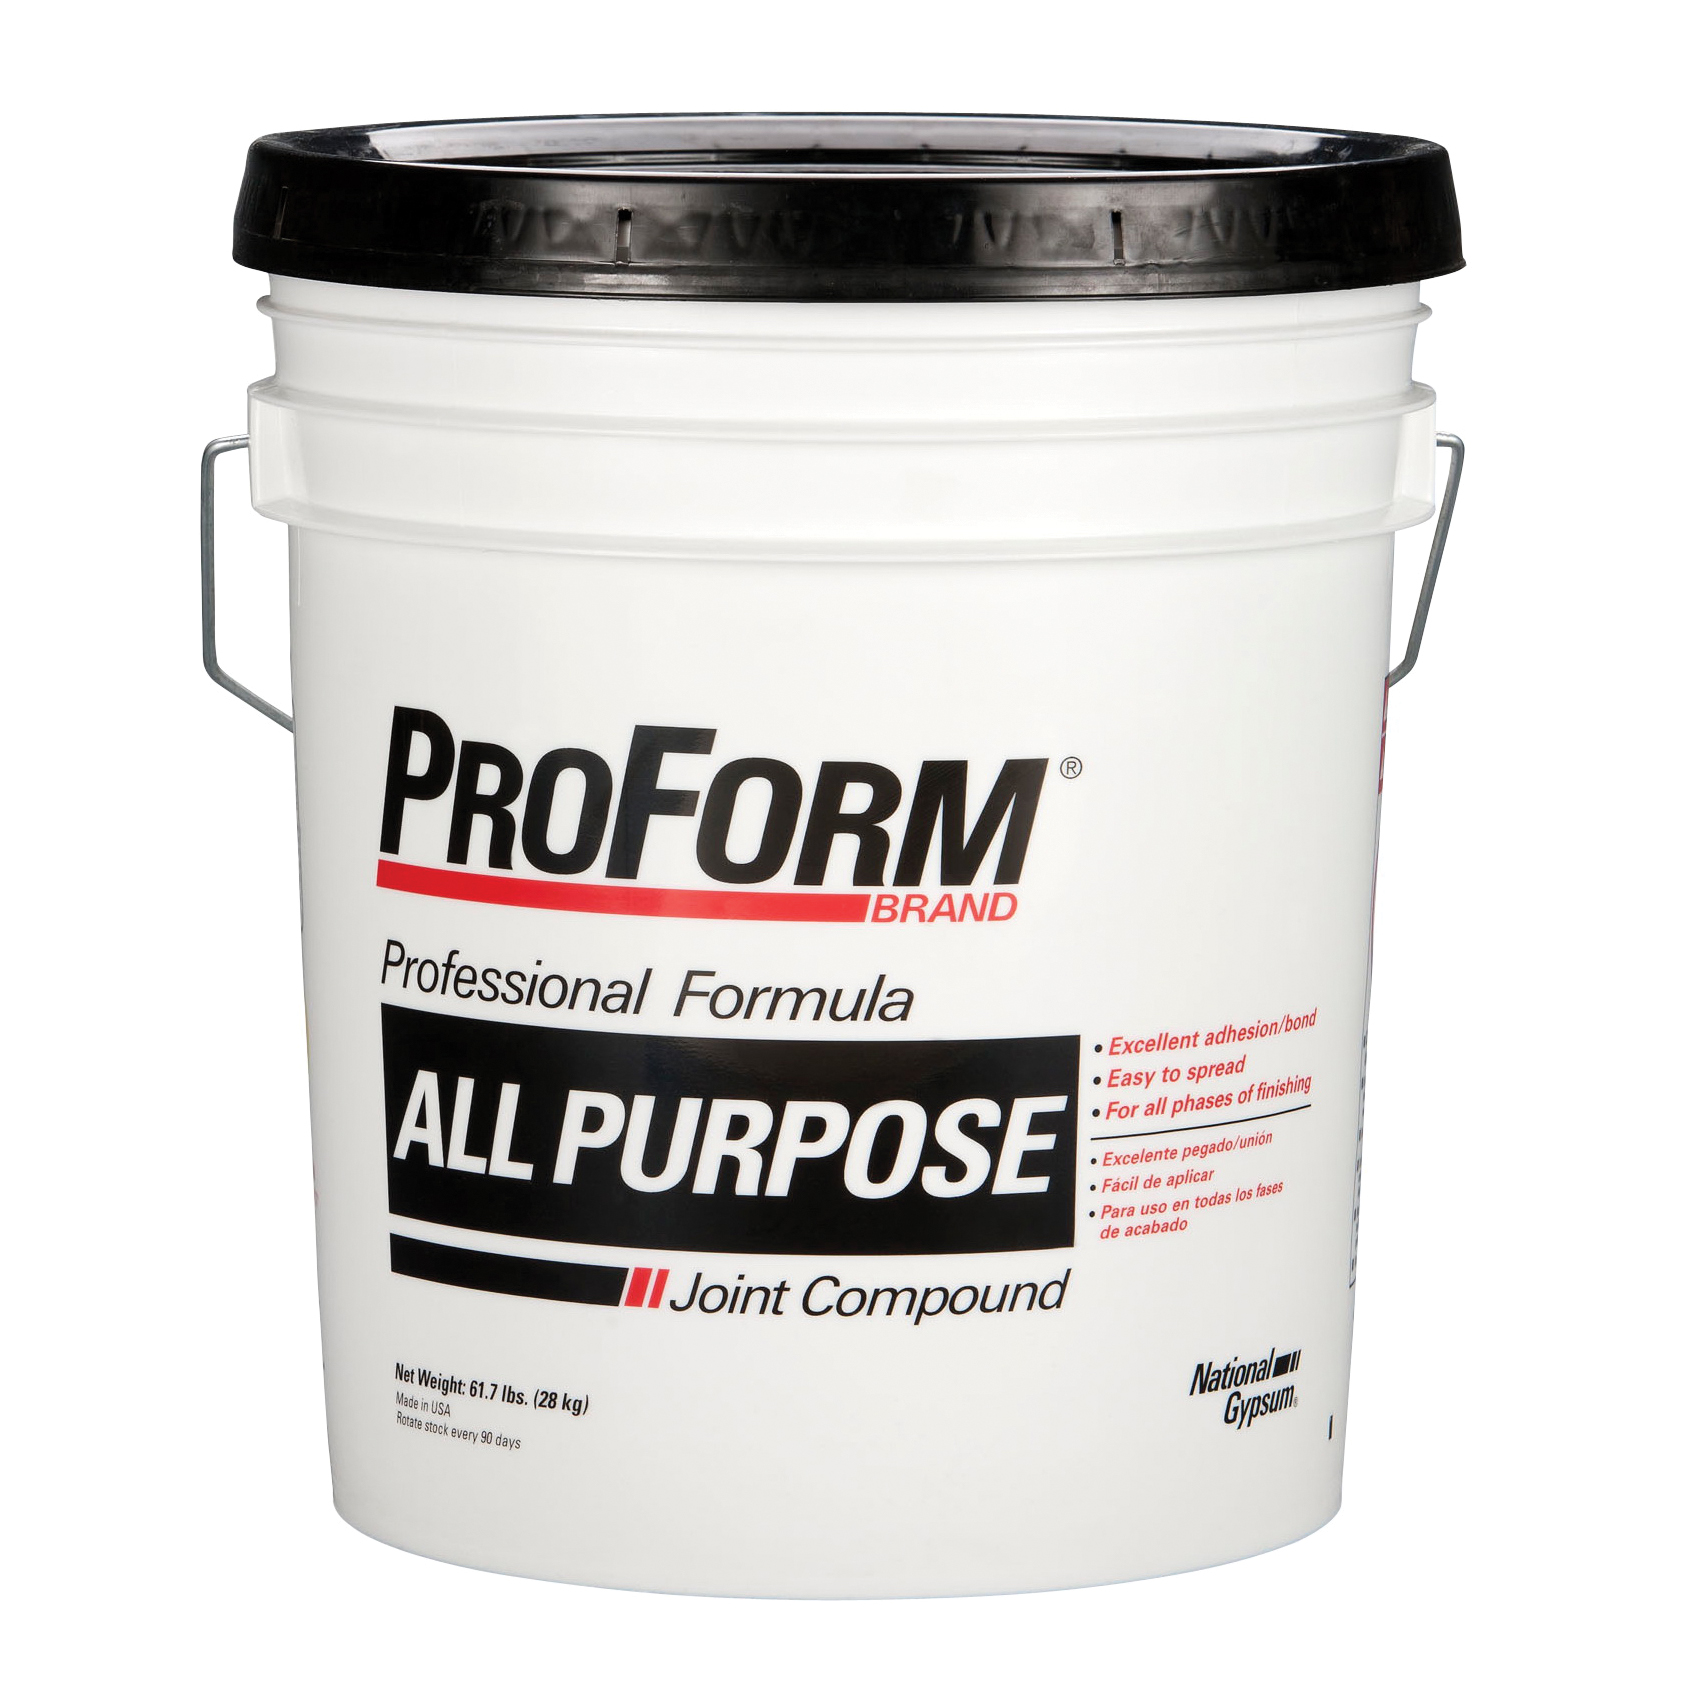 Picture of Proform JT0070 Joint Compound, Paste, Gray, 61.7 lb Package, Pail